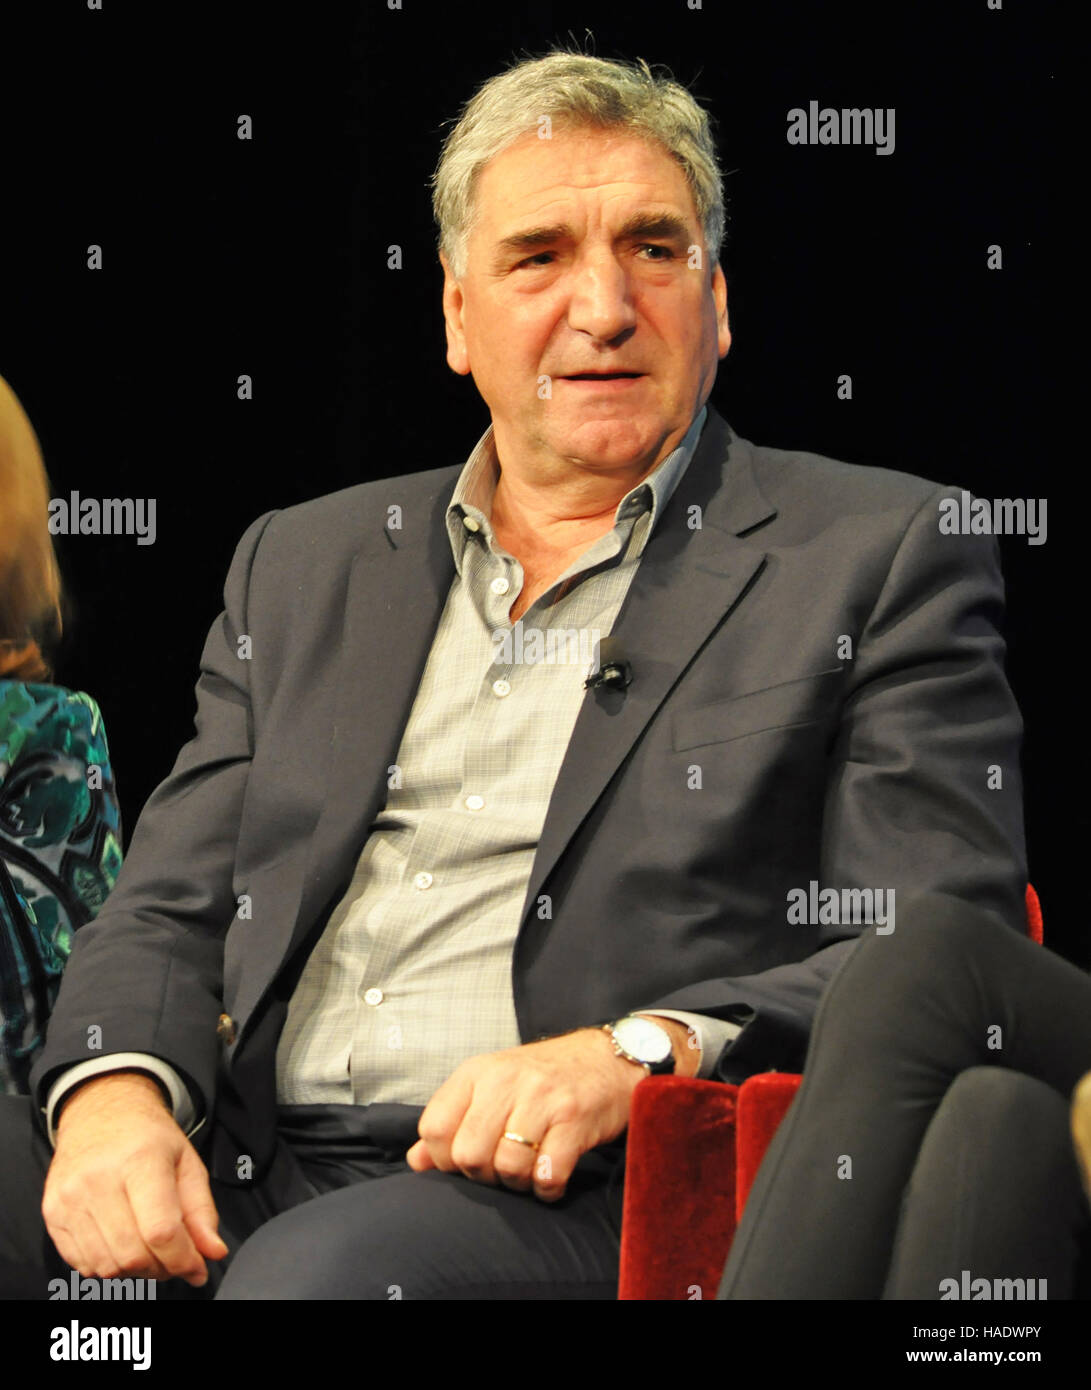 NY, NY. December 8 2015.  Jim Carter (Mr. Carson) at the 'Downtown Abbey' PBS panel. © Veronica Bruno/Alamy - Stock Image